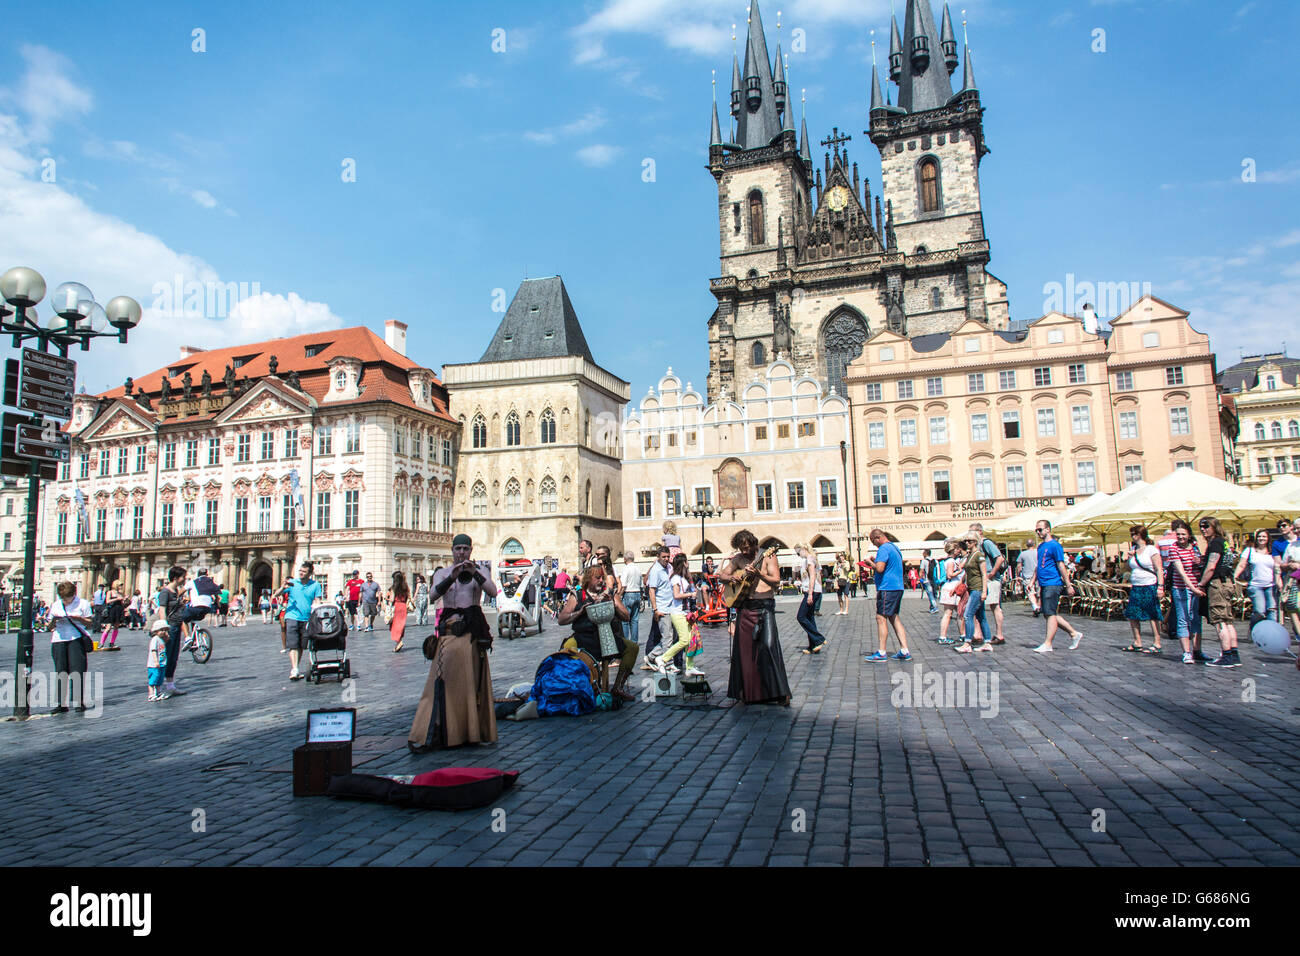 Les artistes et les touristes sur la place de Prague Photo Stock